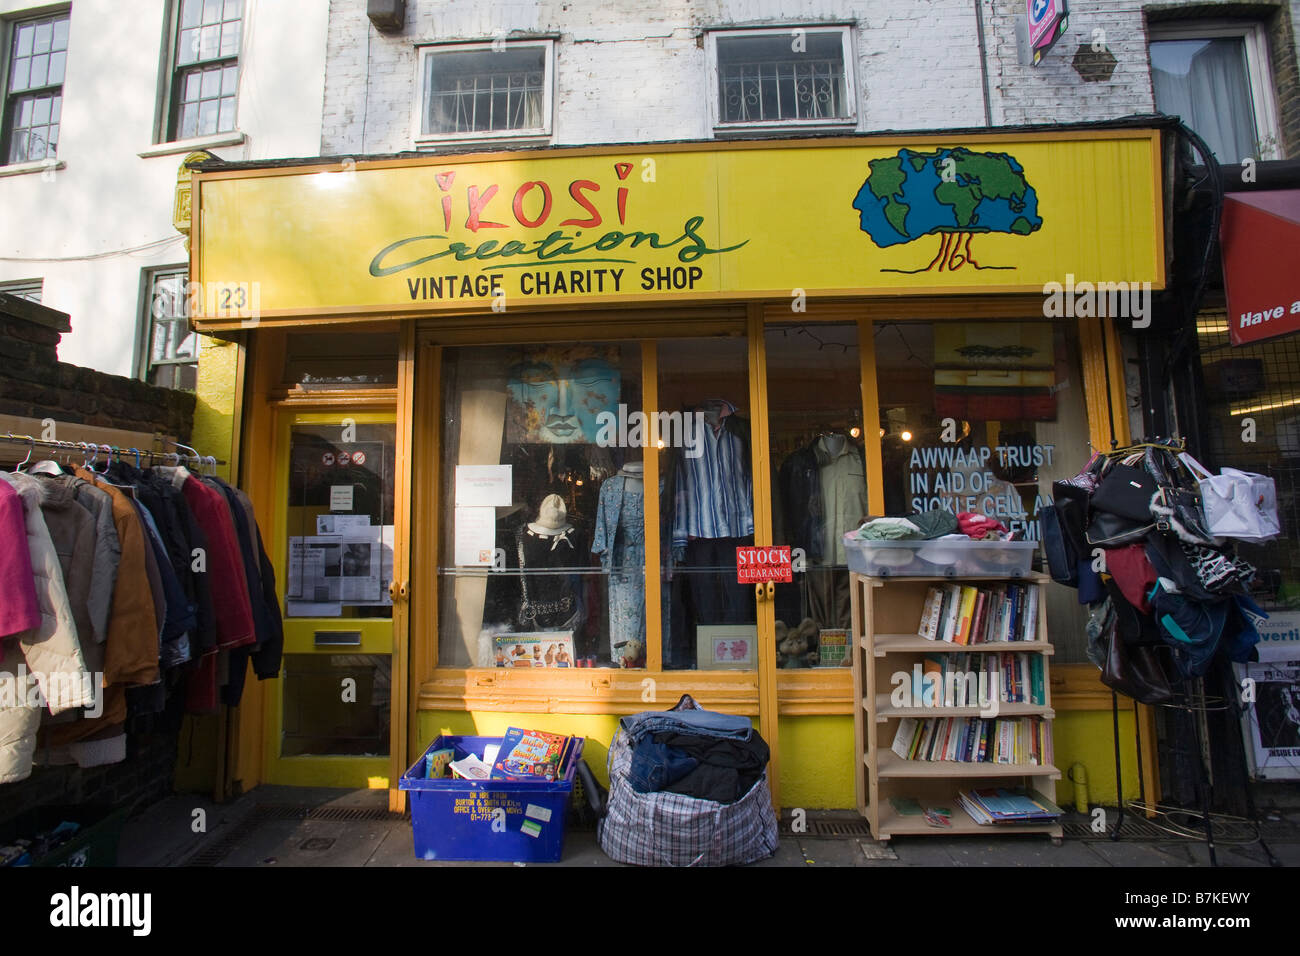 Vintage Charity Shop, Ikosi Creations, Old Ford Road, Bethnal Green, Tower Hamlets London GB UK - Stock Image